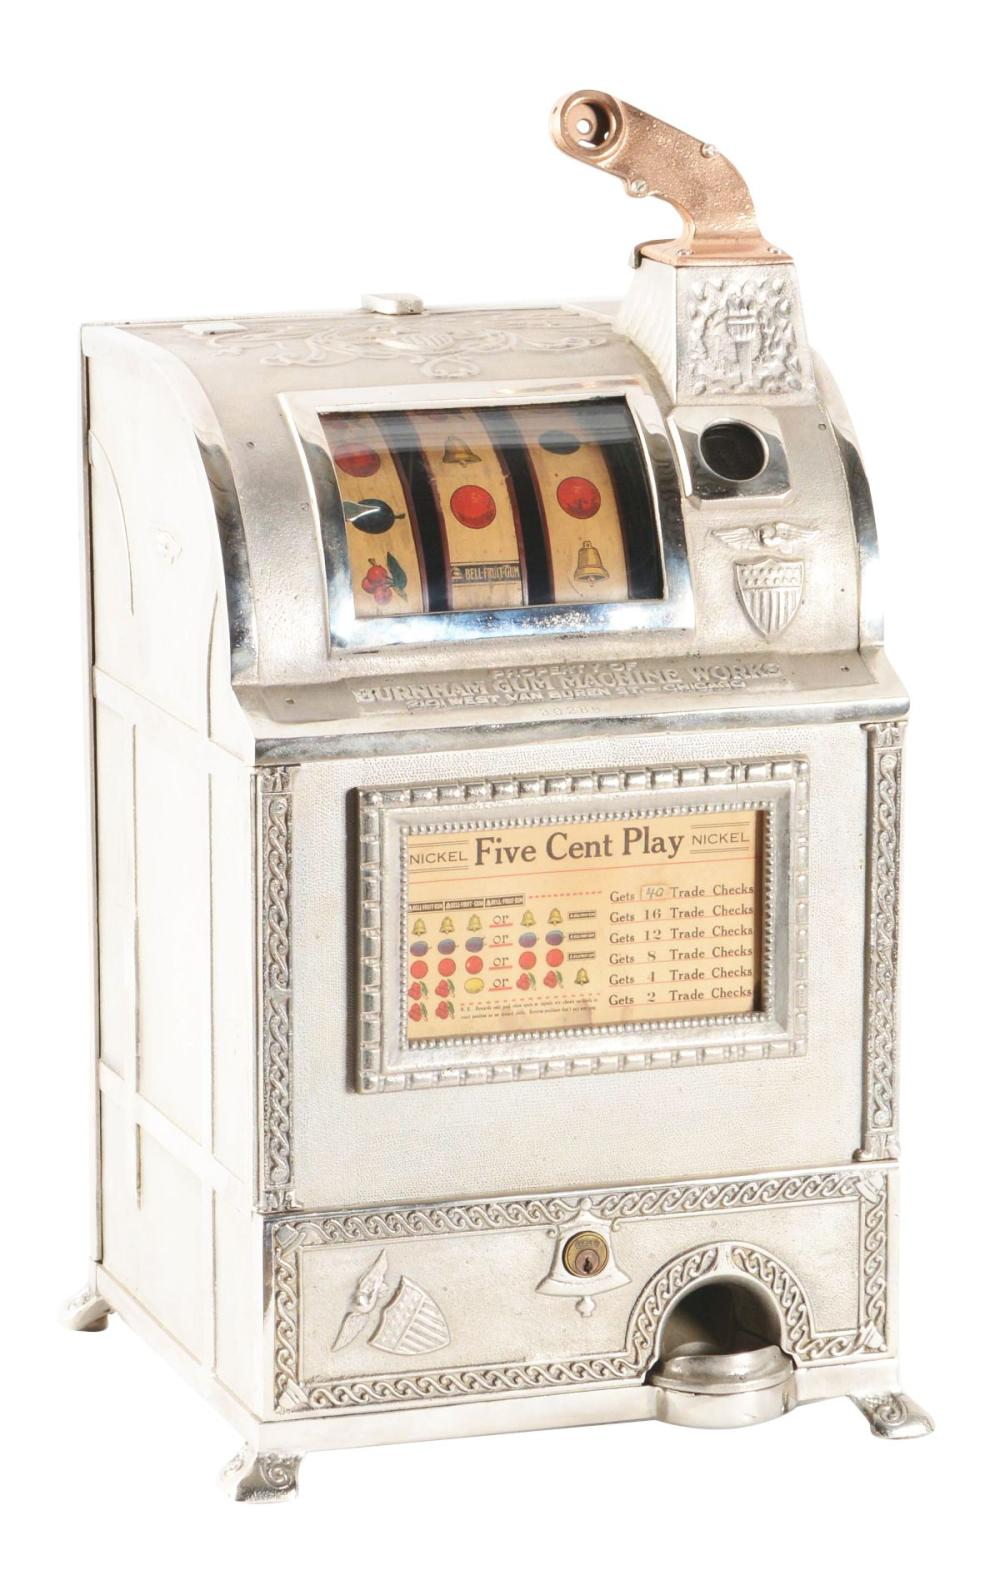 5¢ BURNHAM GUM MACHINE WORKS SLOT MACHINE.